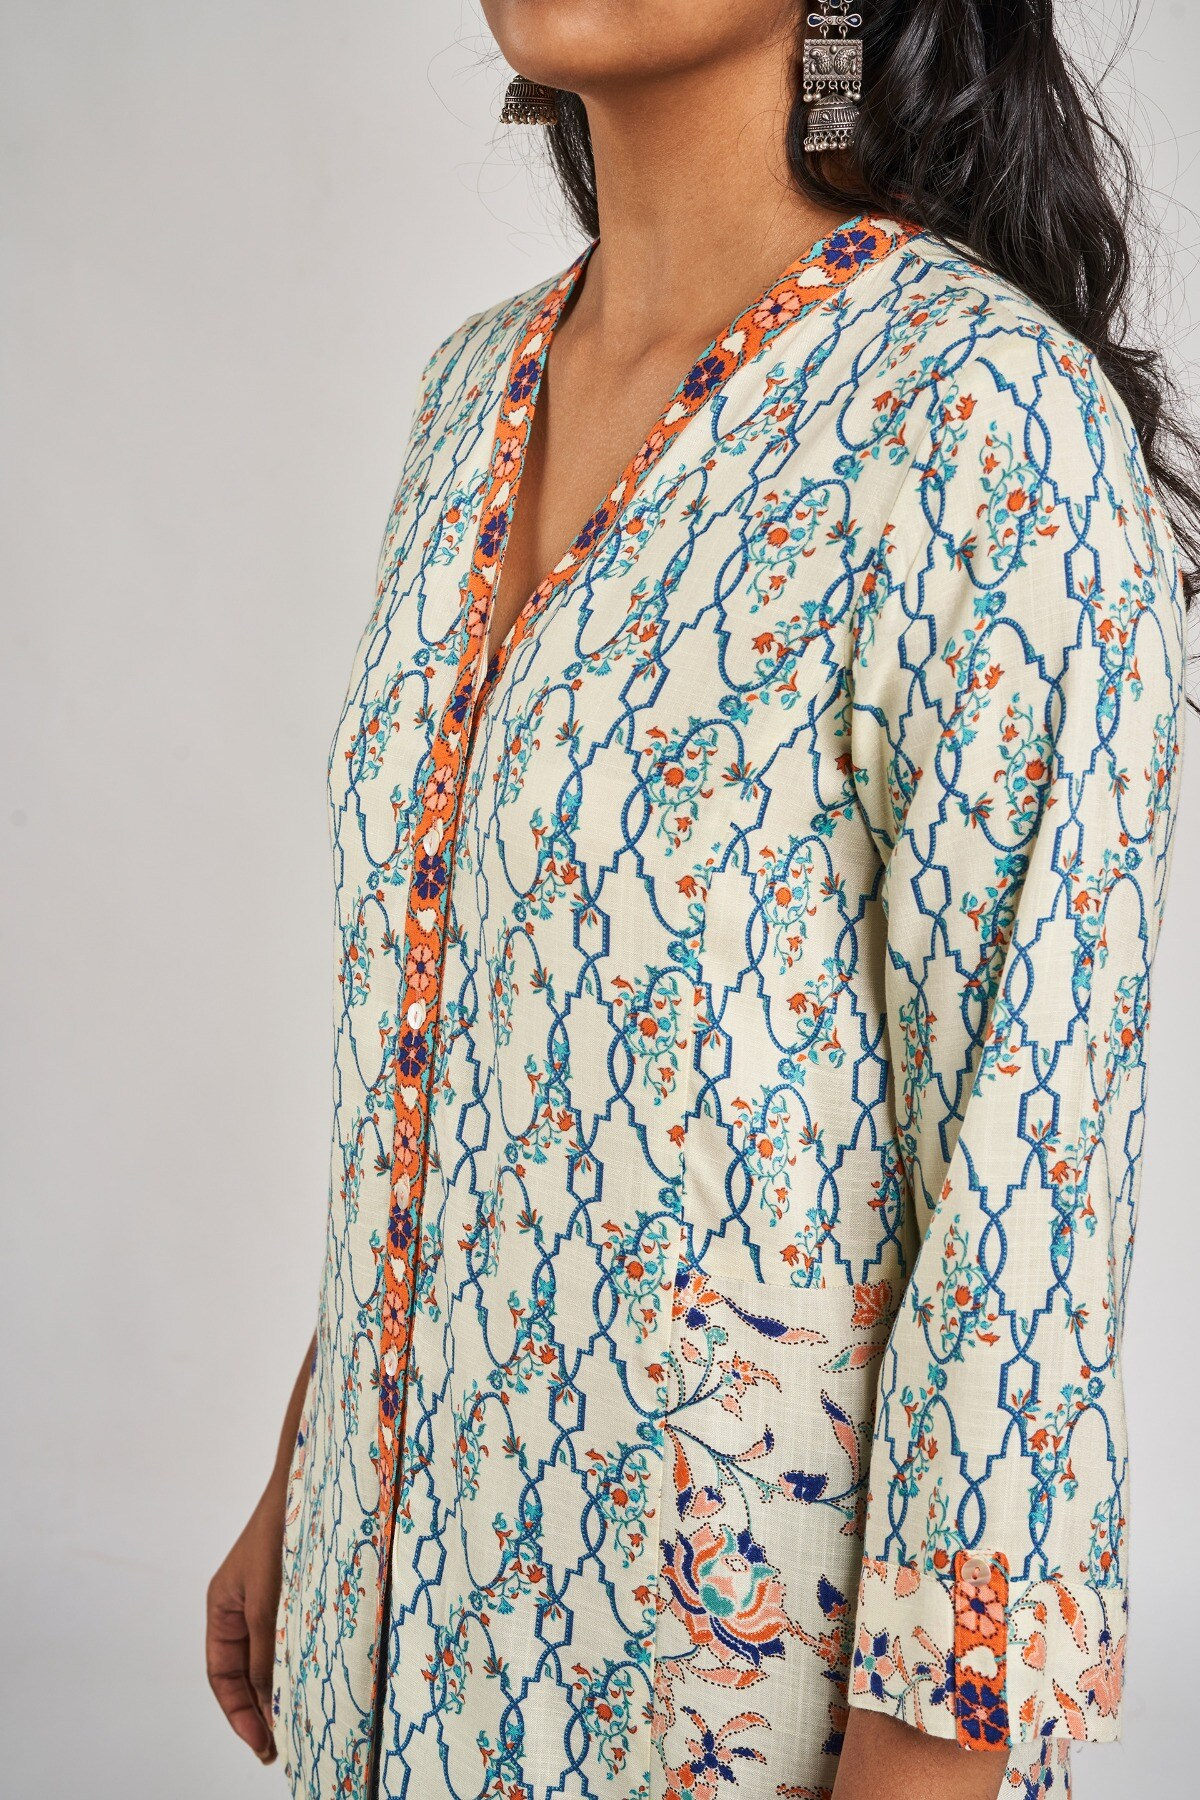 Global Desi | Off White Floral Printed A-Line Top